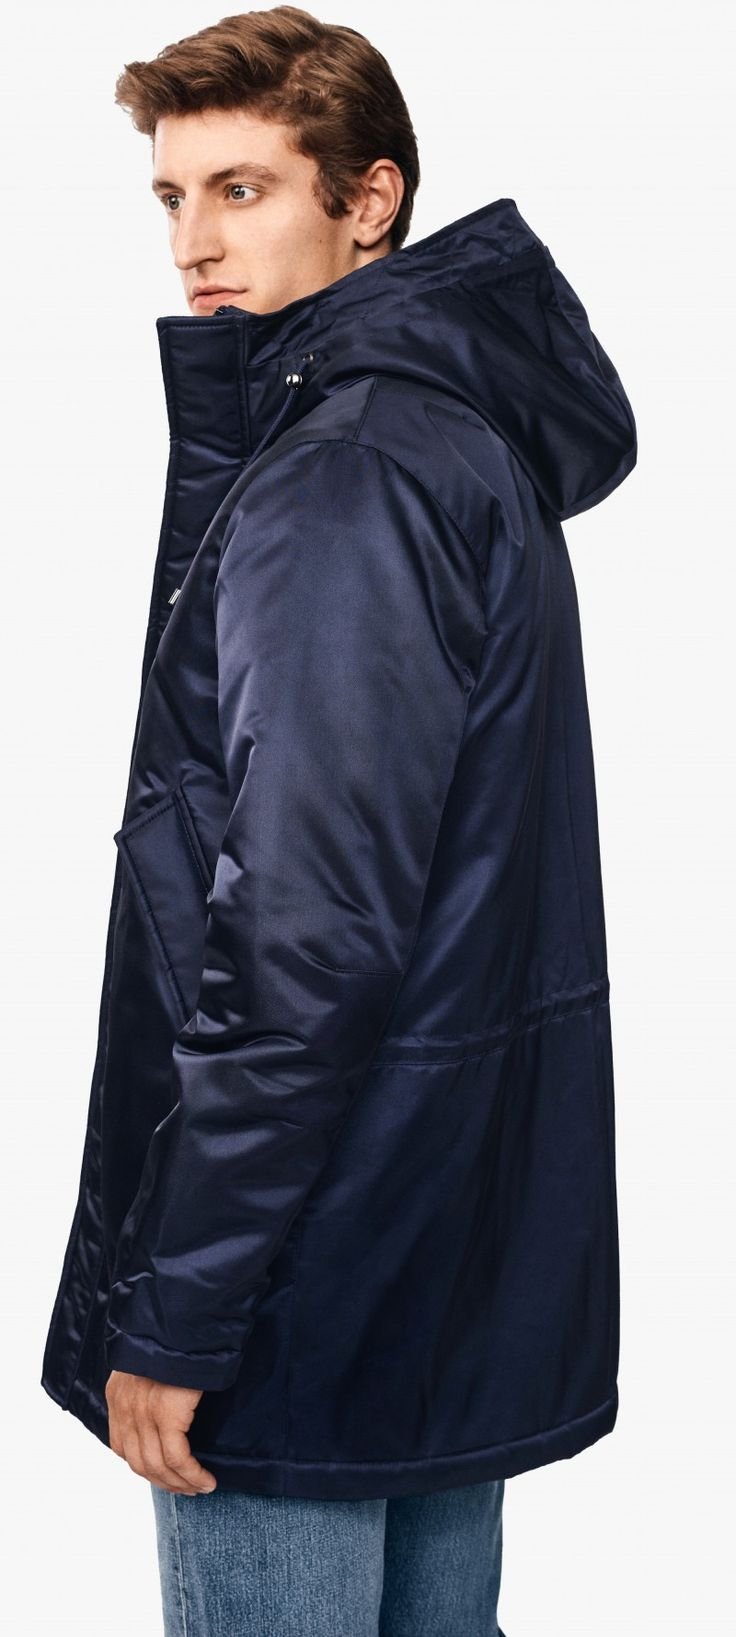 The blue parka   Teym ● The official online brand store